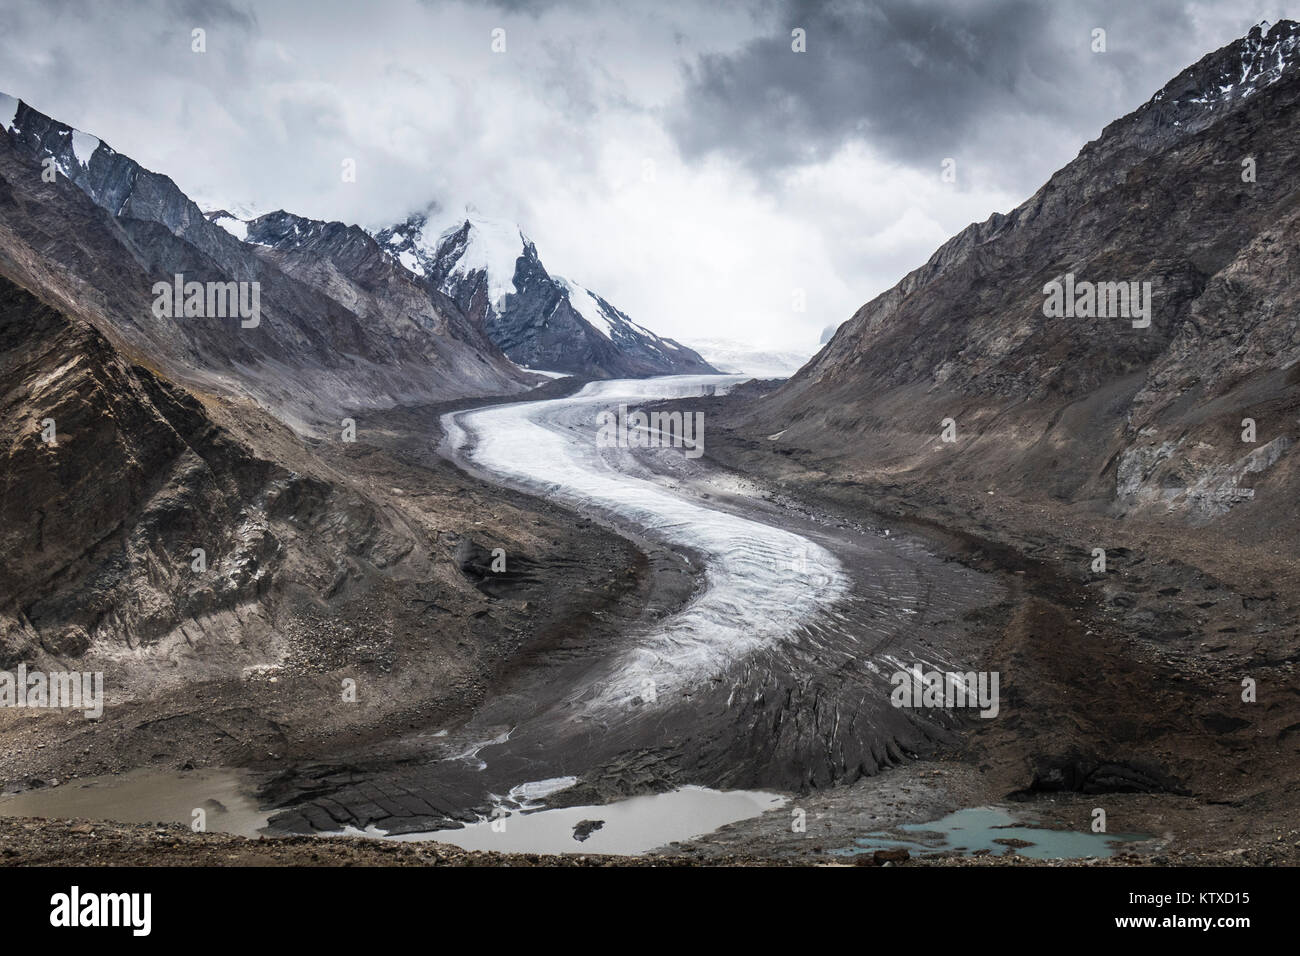 Dropping down from Penzi La, looking at the glacial moraine that feeds into the Stod River, one of the tributaries - Stock Image